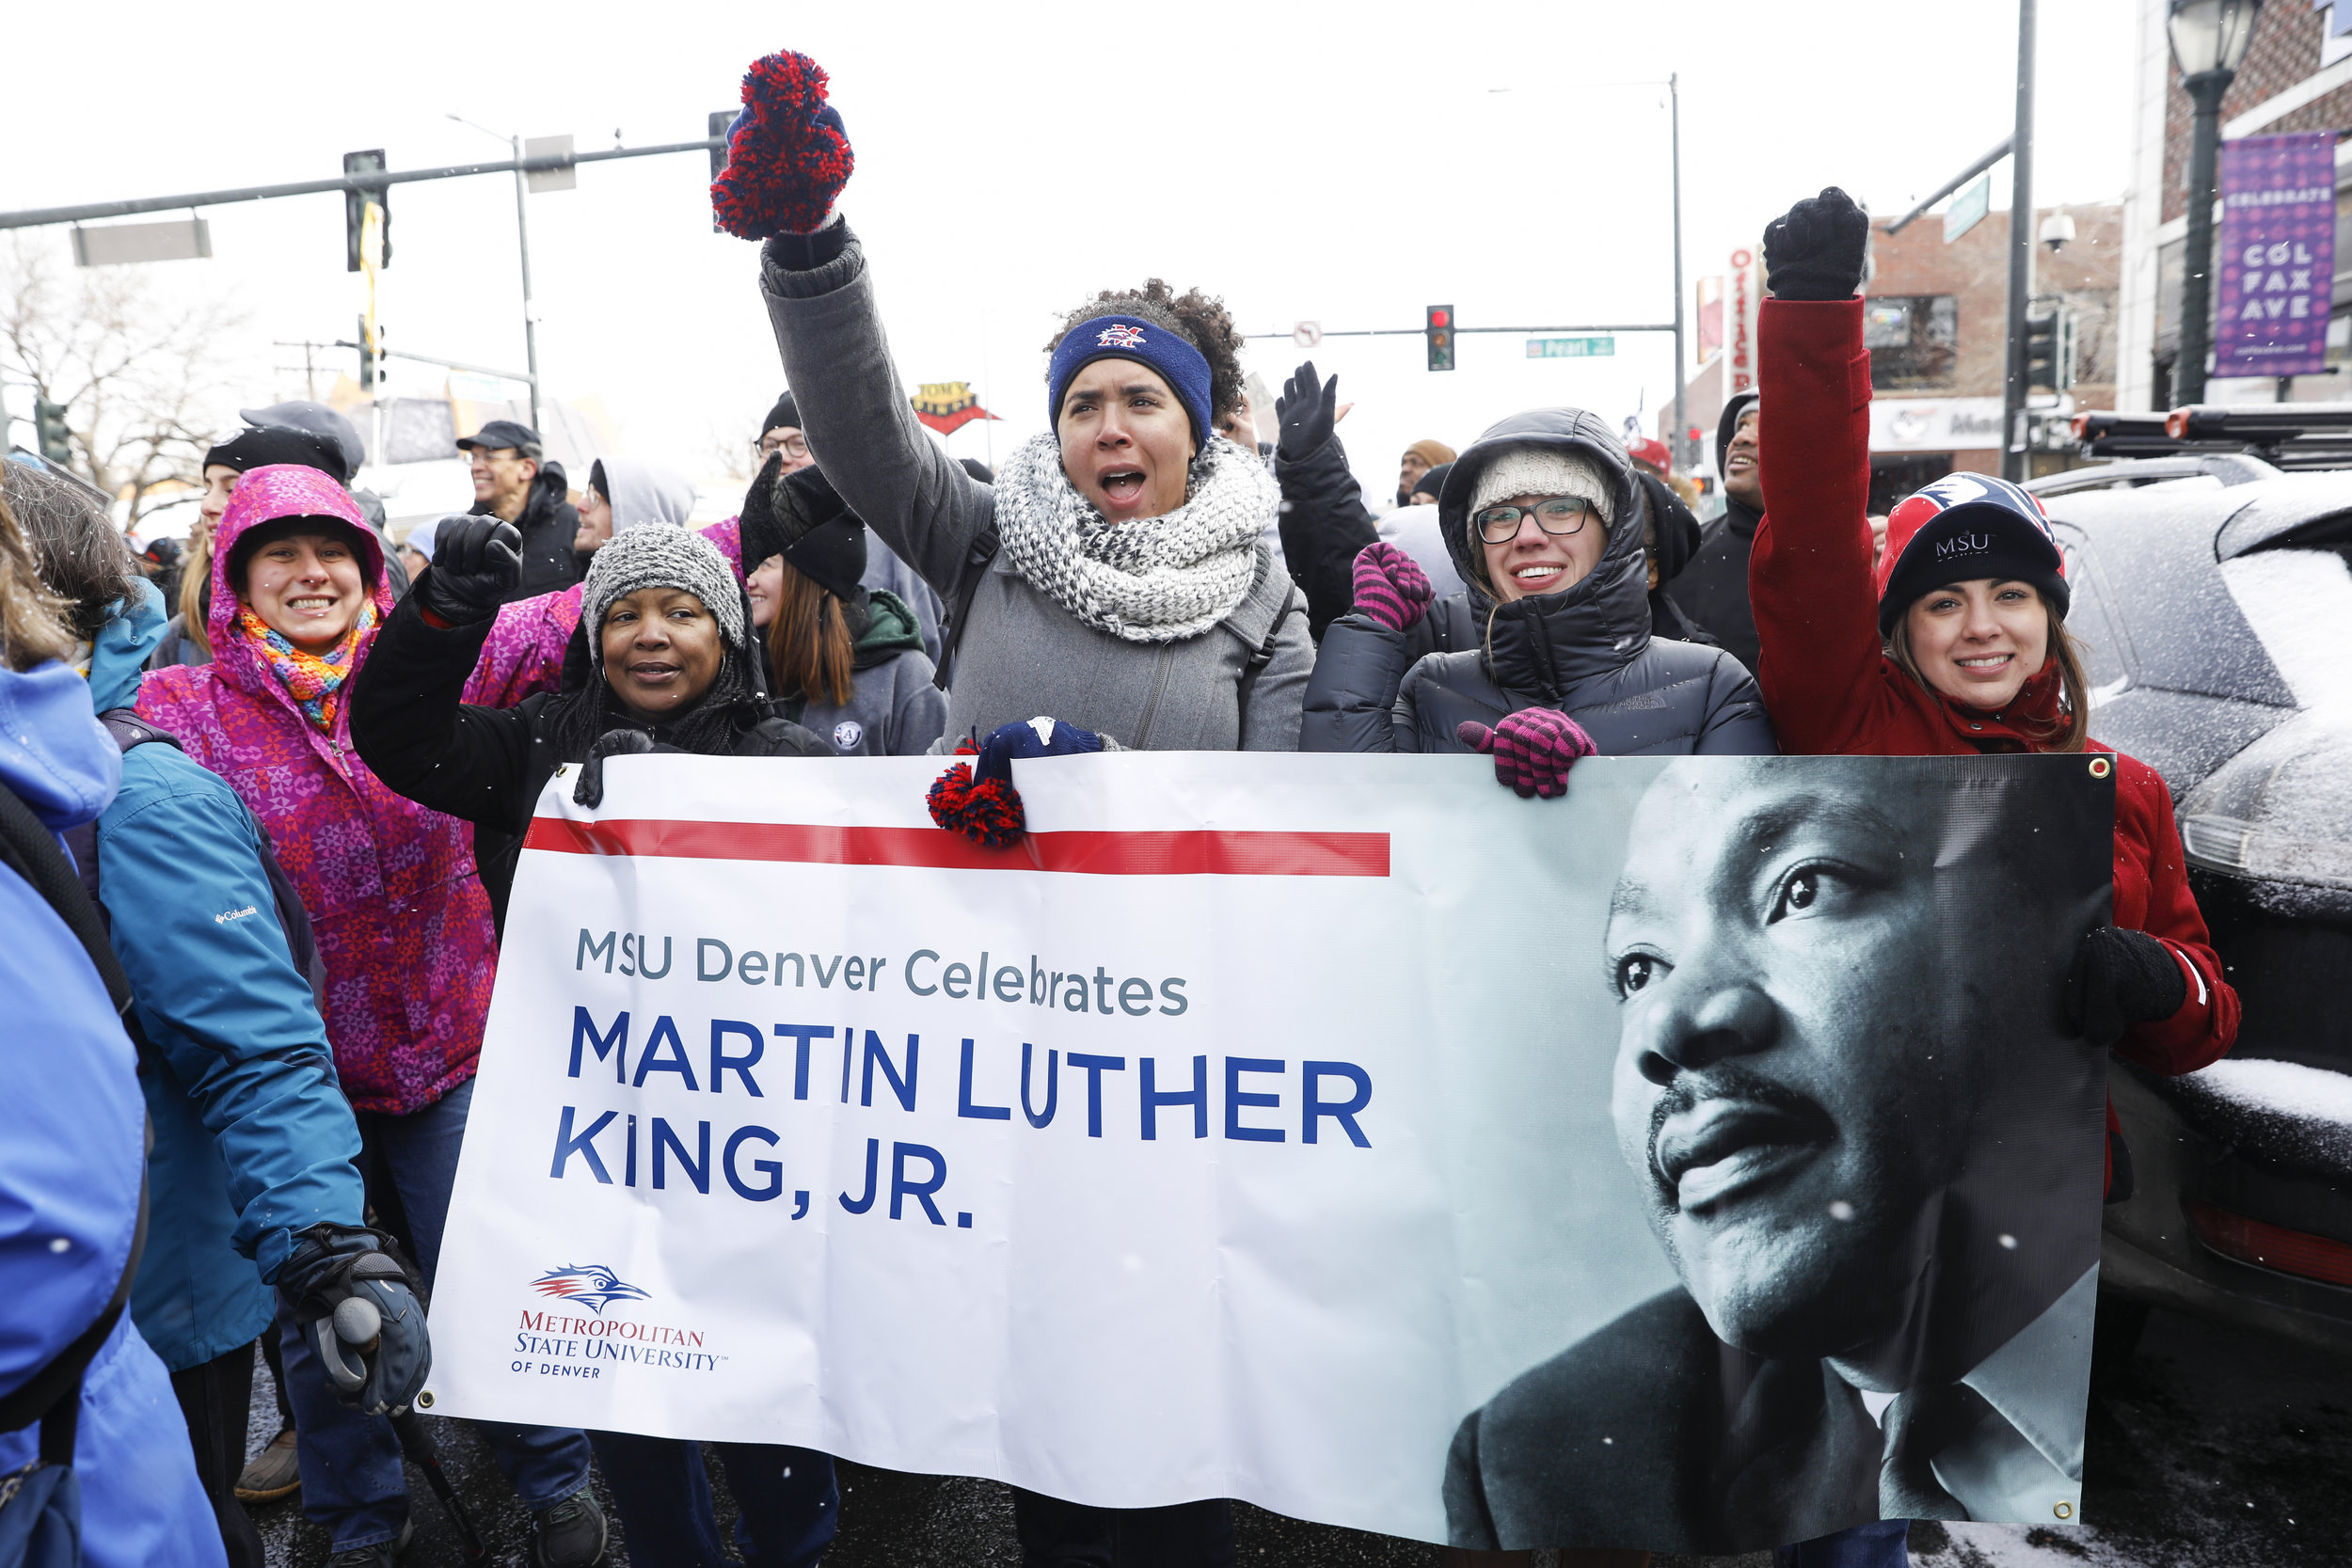 Students from MSU marched along to celebrate MLK Day in Denver. (Photo Credit: Aly McClaran)